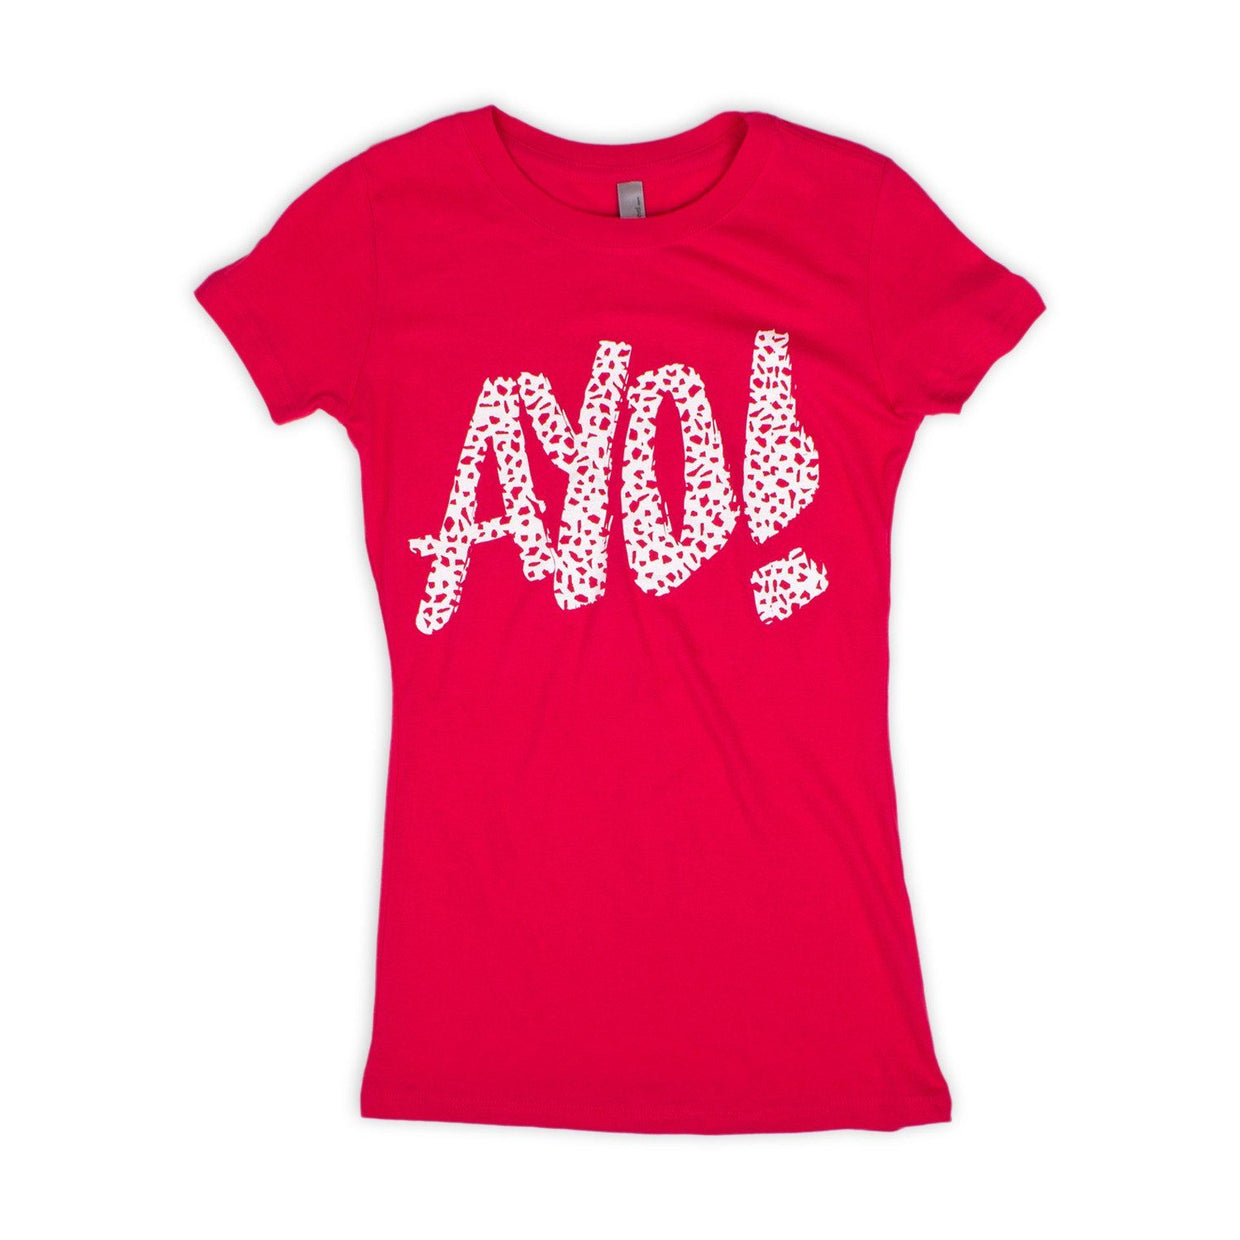 Andy Mineo 'Ayo' Women's T-Shirt